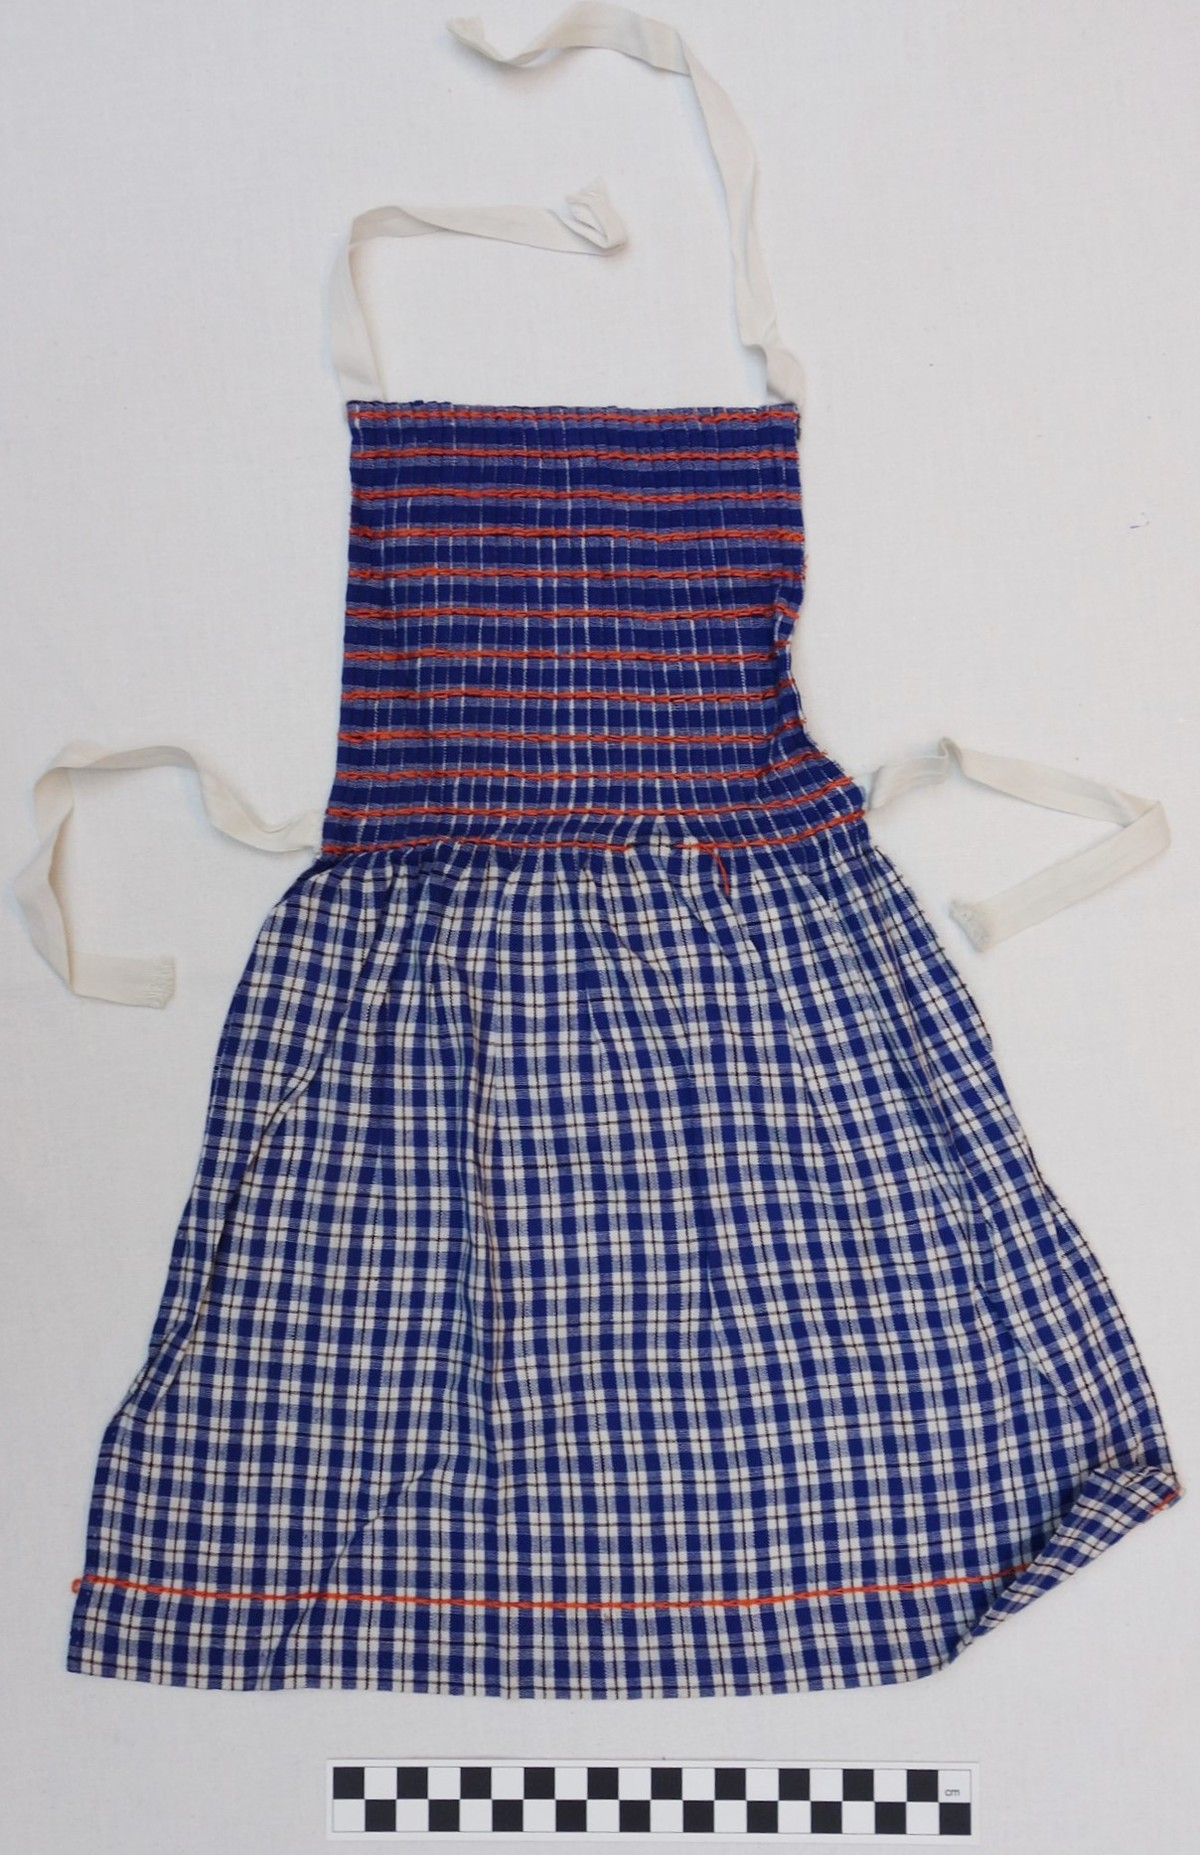 Girl's apron in orange, white and blue, early 1940s (TRC 2010.0569).